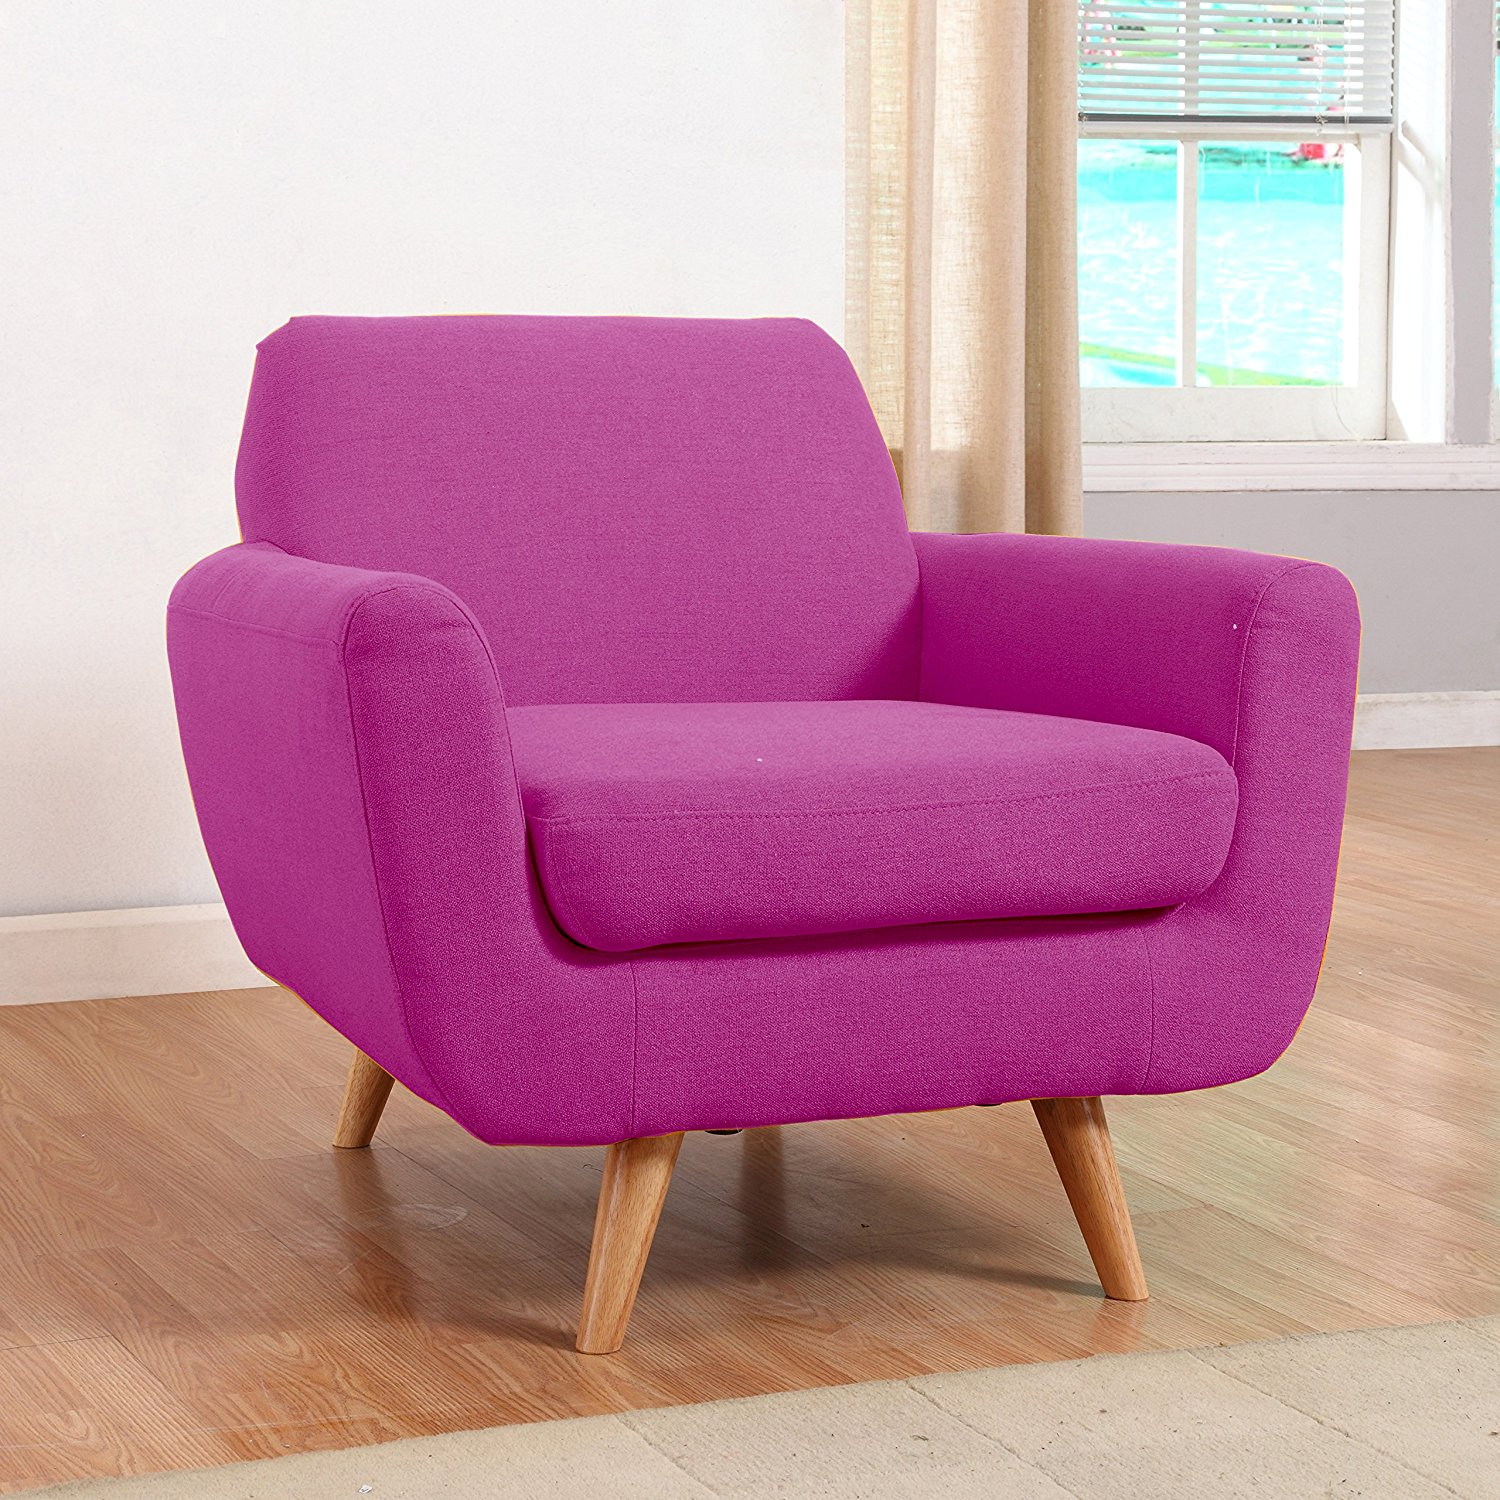 Purple Velvet Sofa for Sale | Purple Sofa | Lavender Leather Sofa